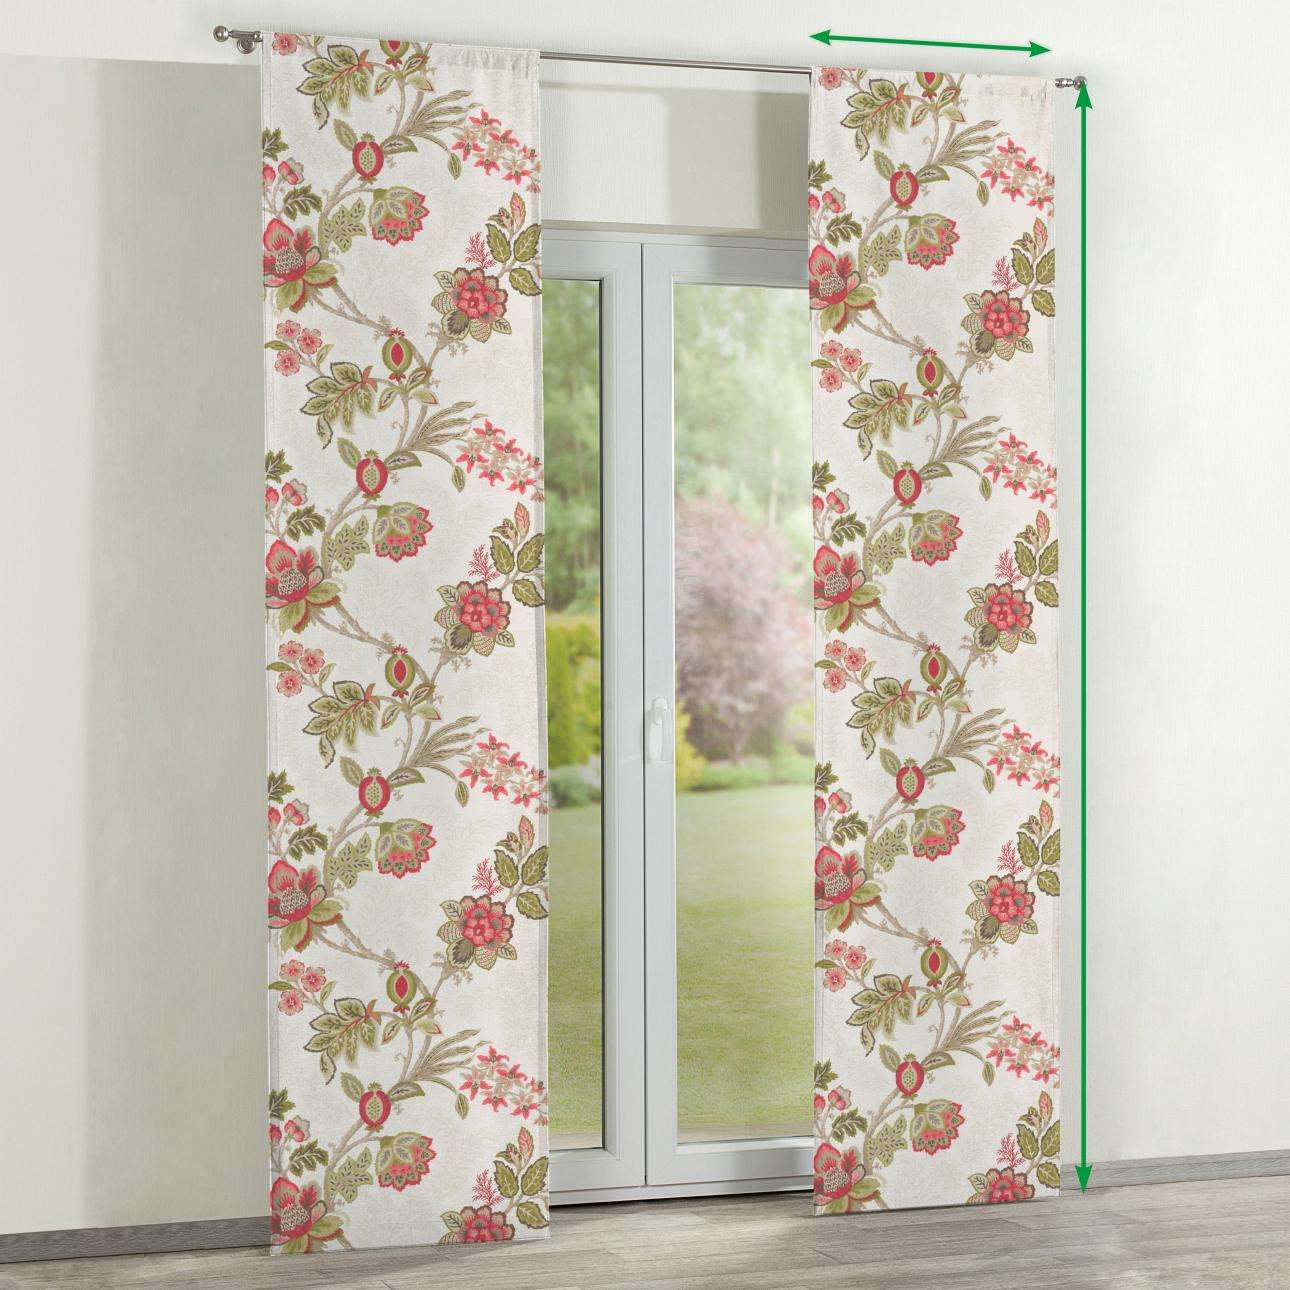 Slot panel curtains – Set of 2 in collection Flowers, fabric: 140-98